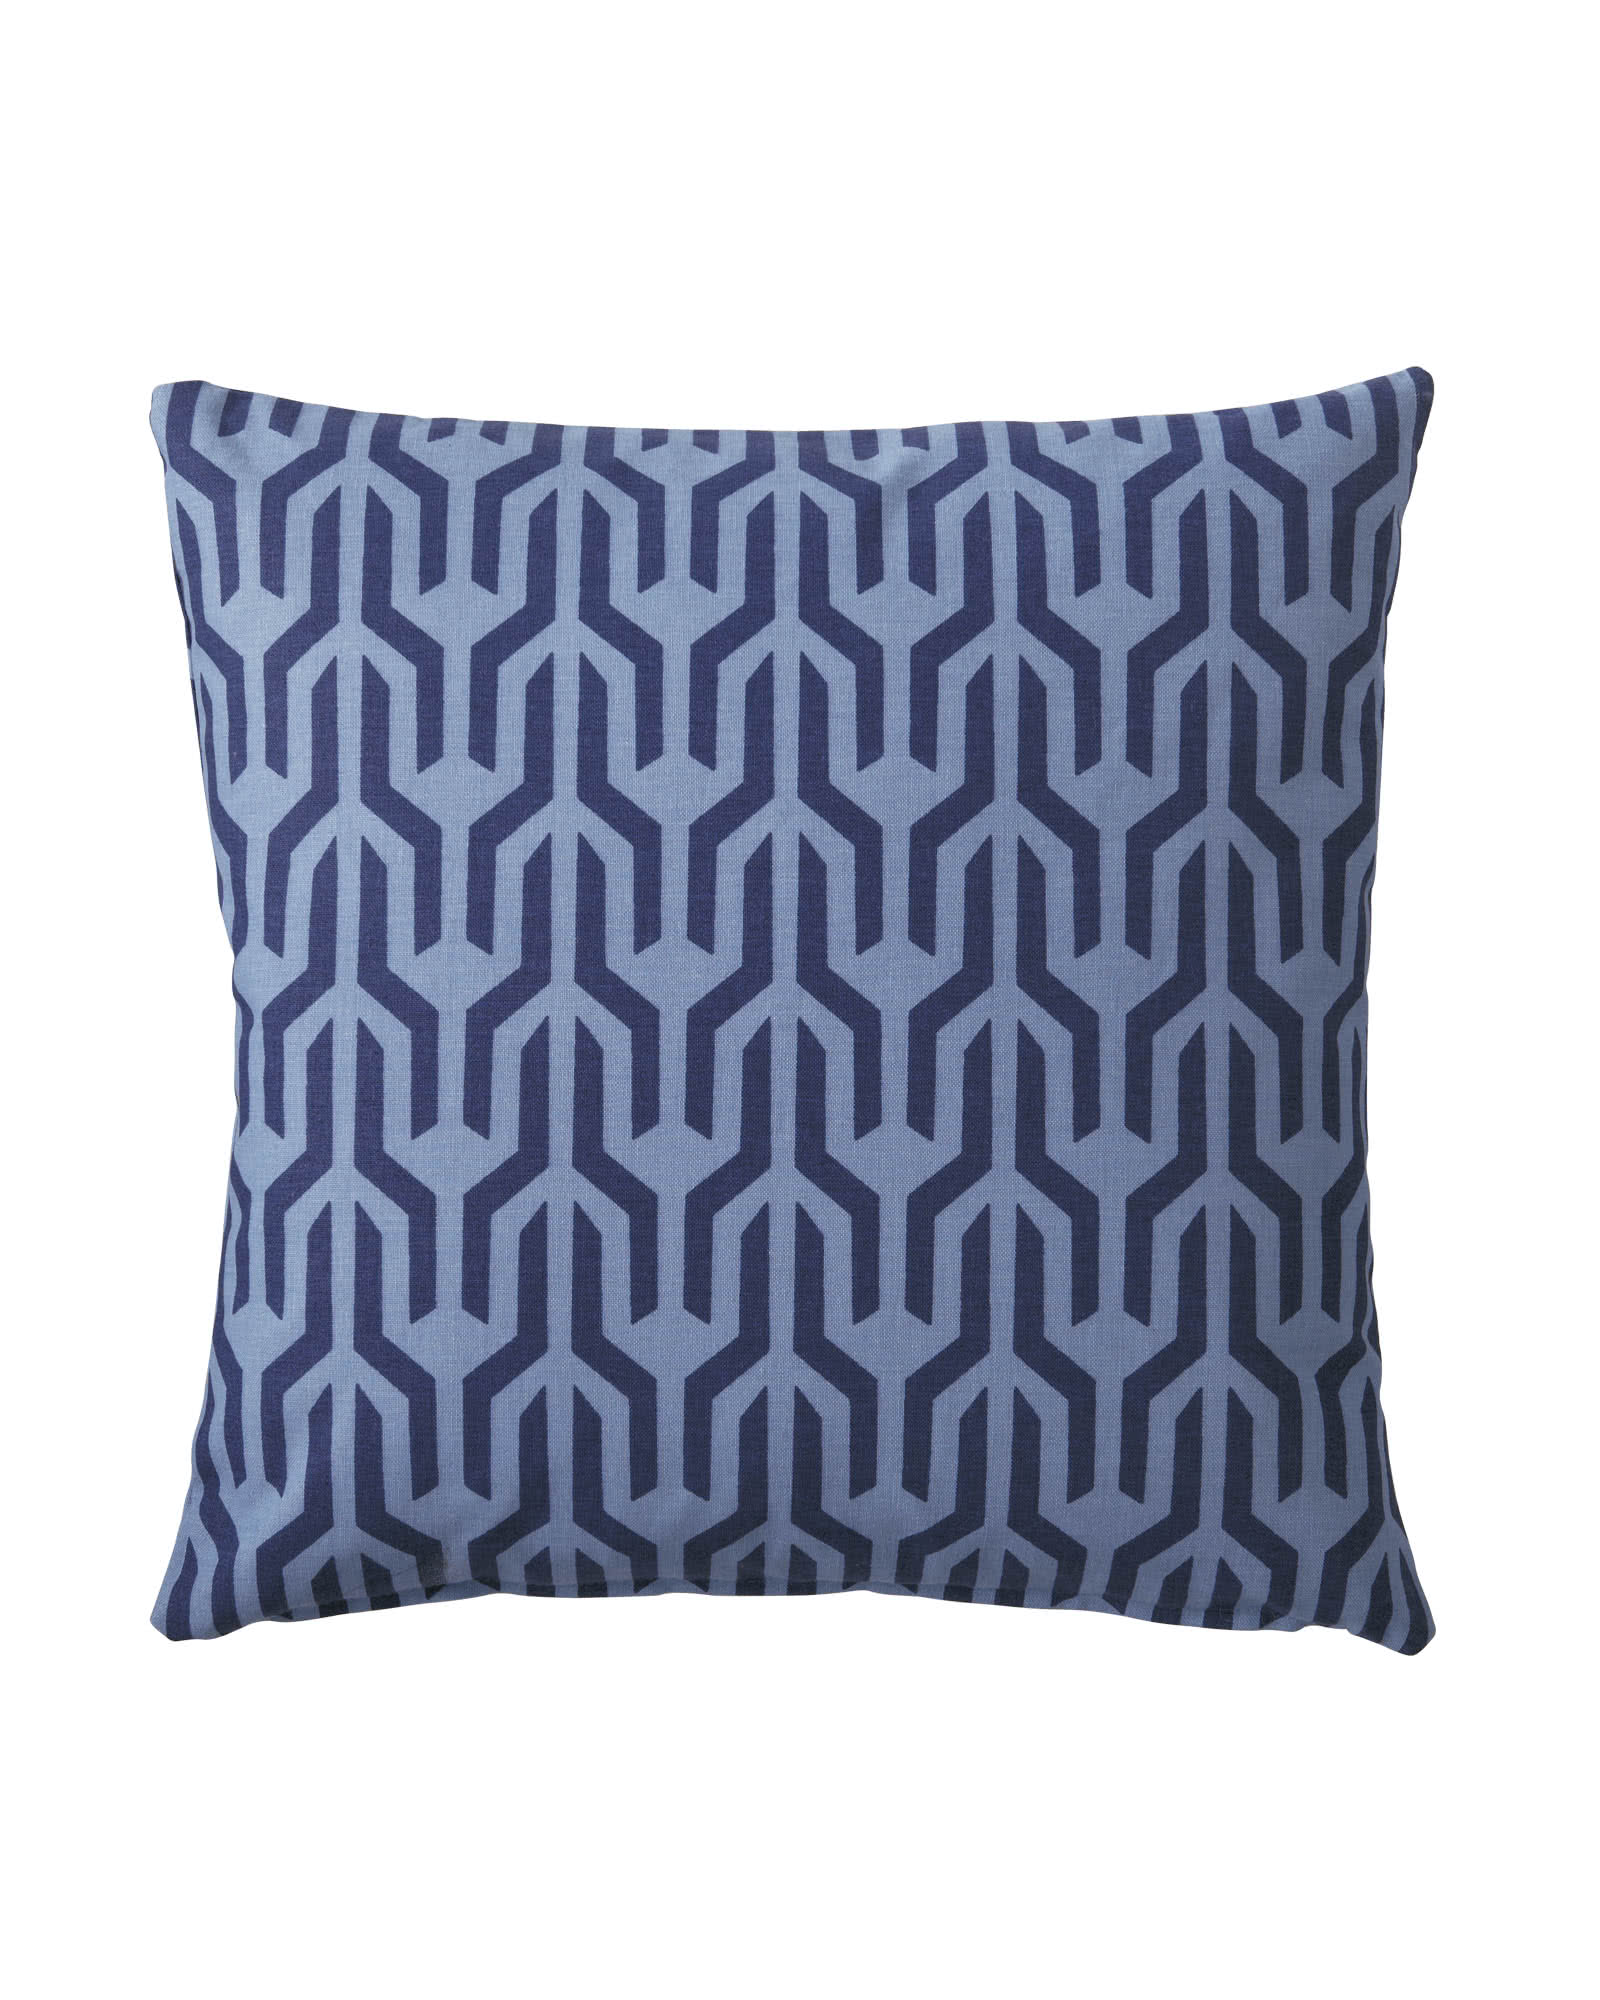 Kuba Pillow Covers